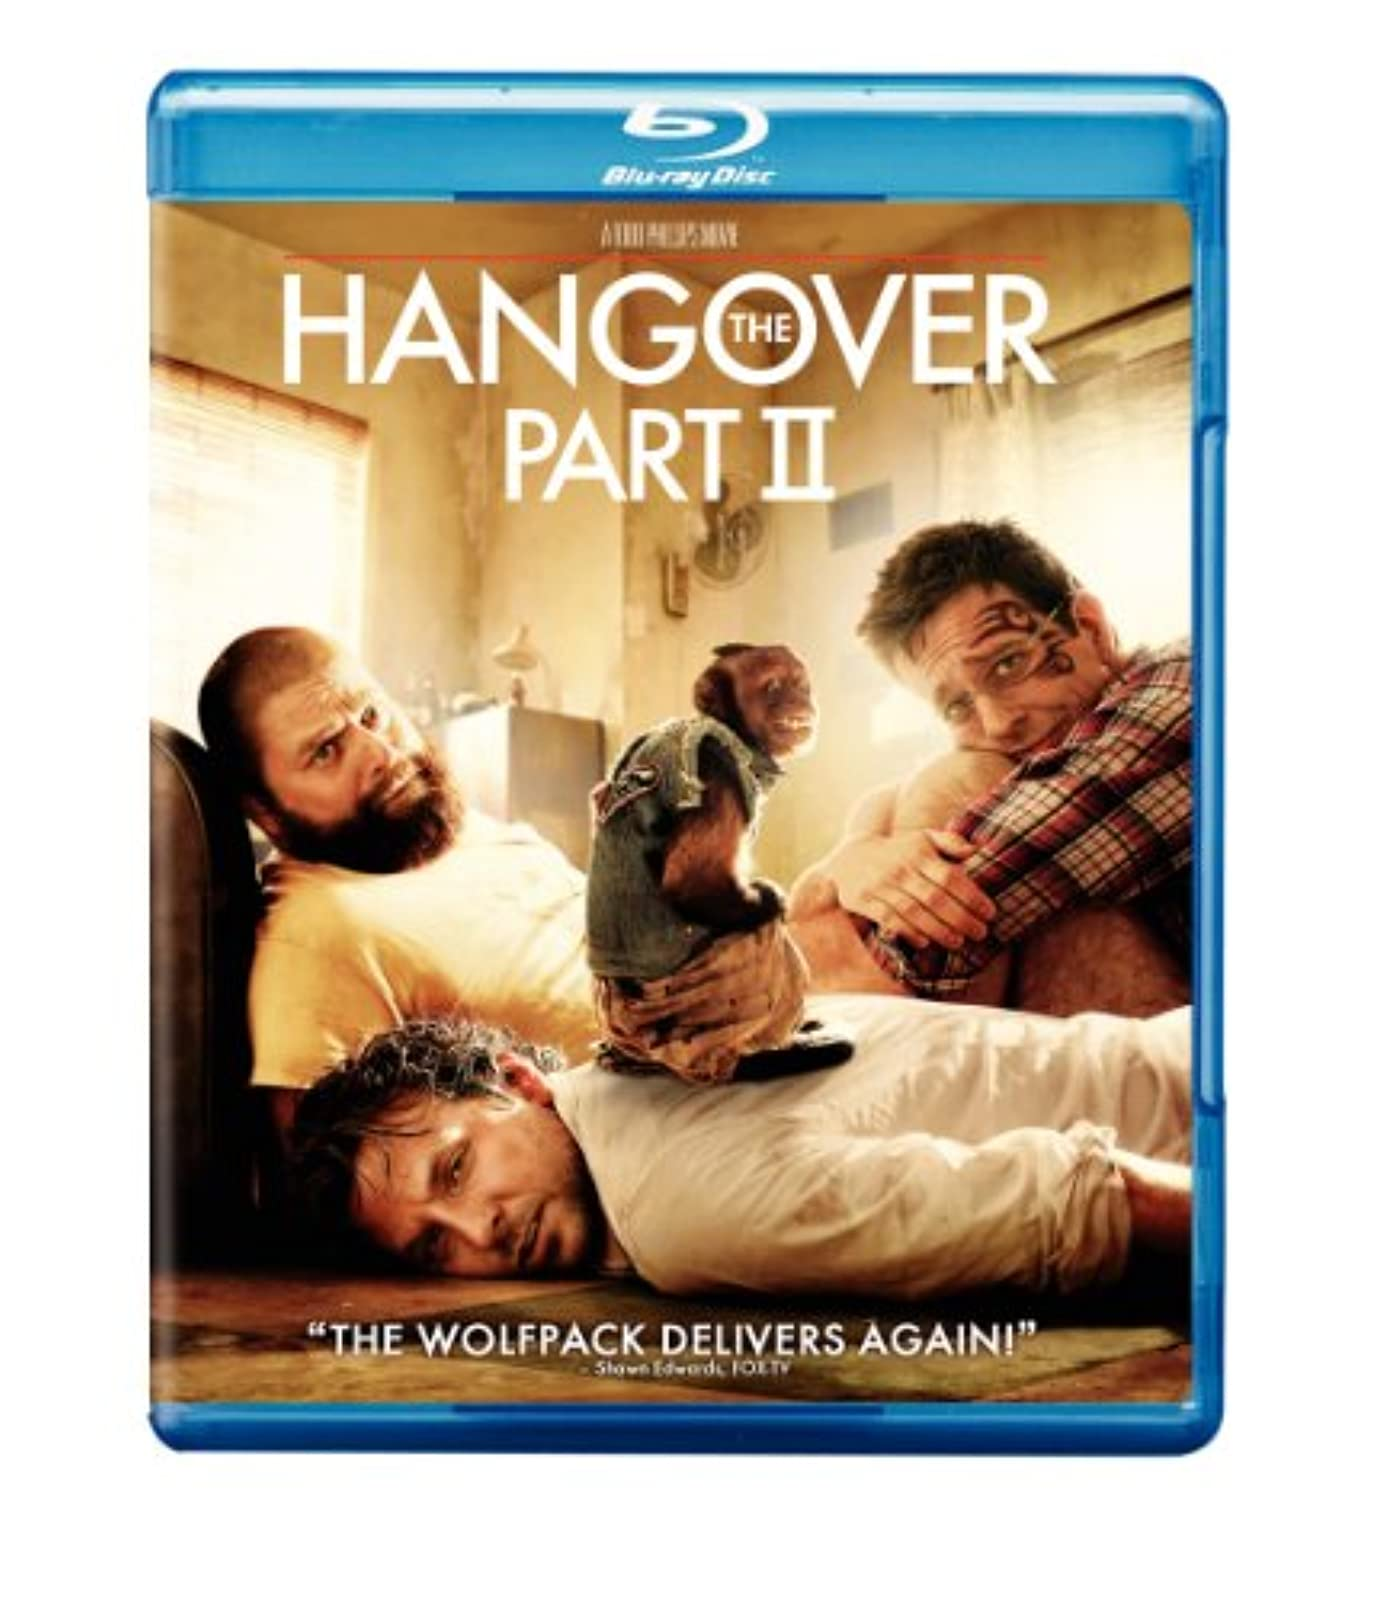 The Hangover Part II Movie-Only Edition Blu-Ray On Blu-Ray With